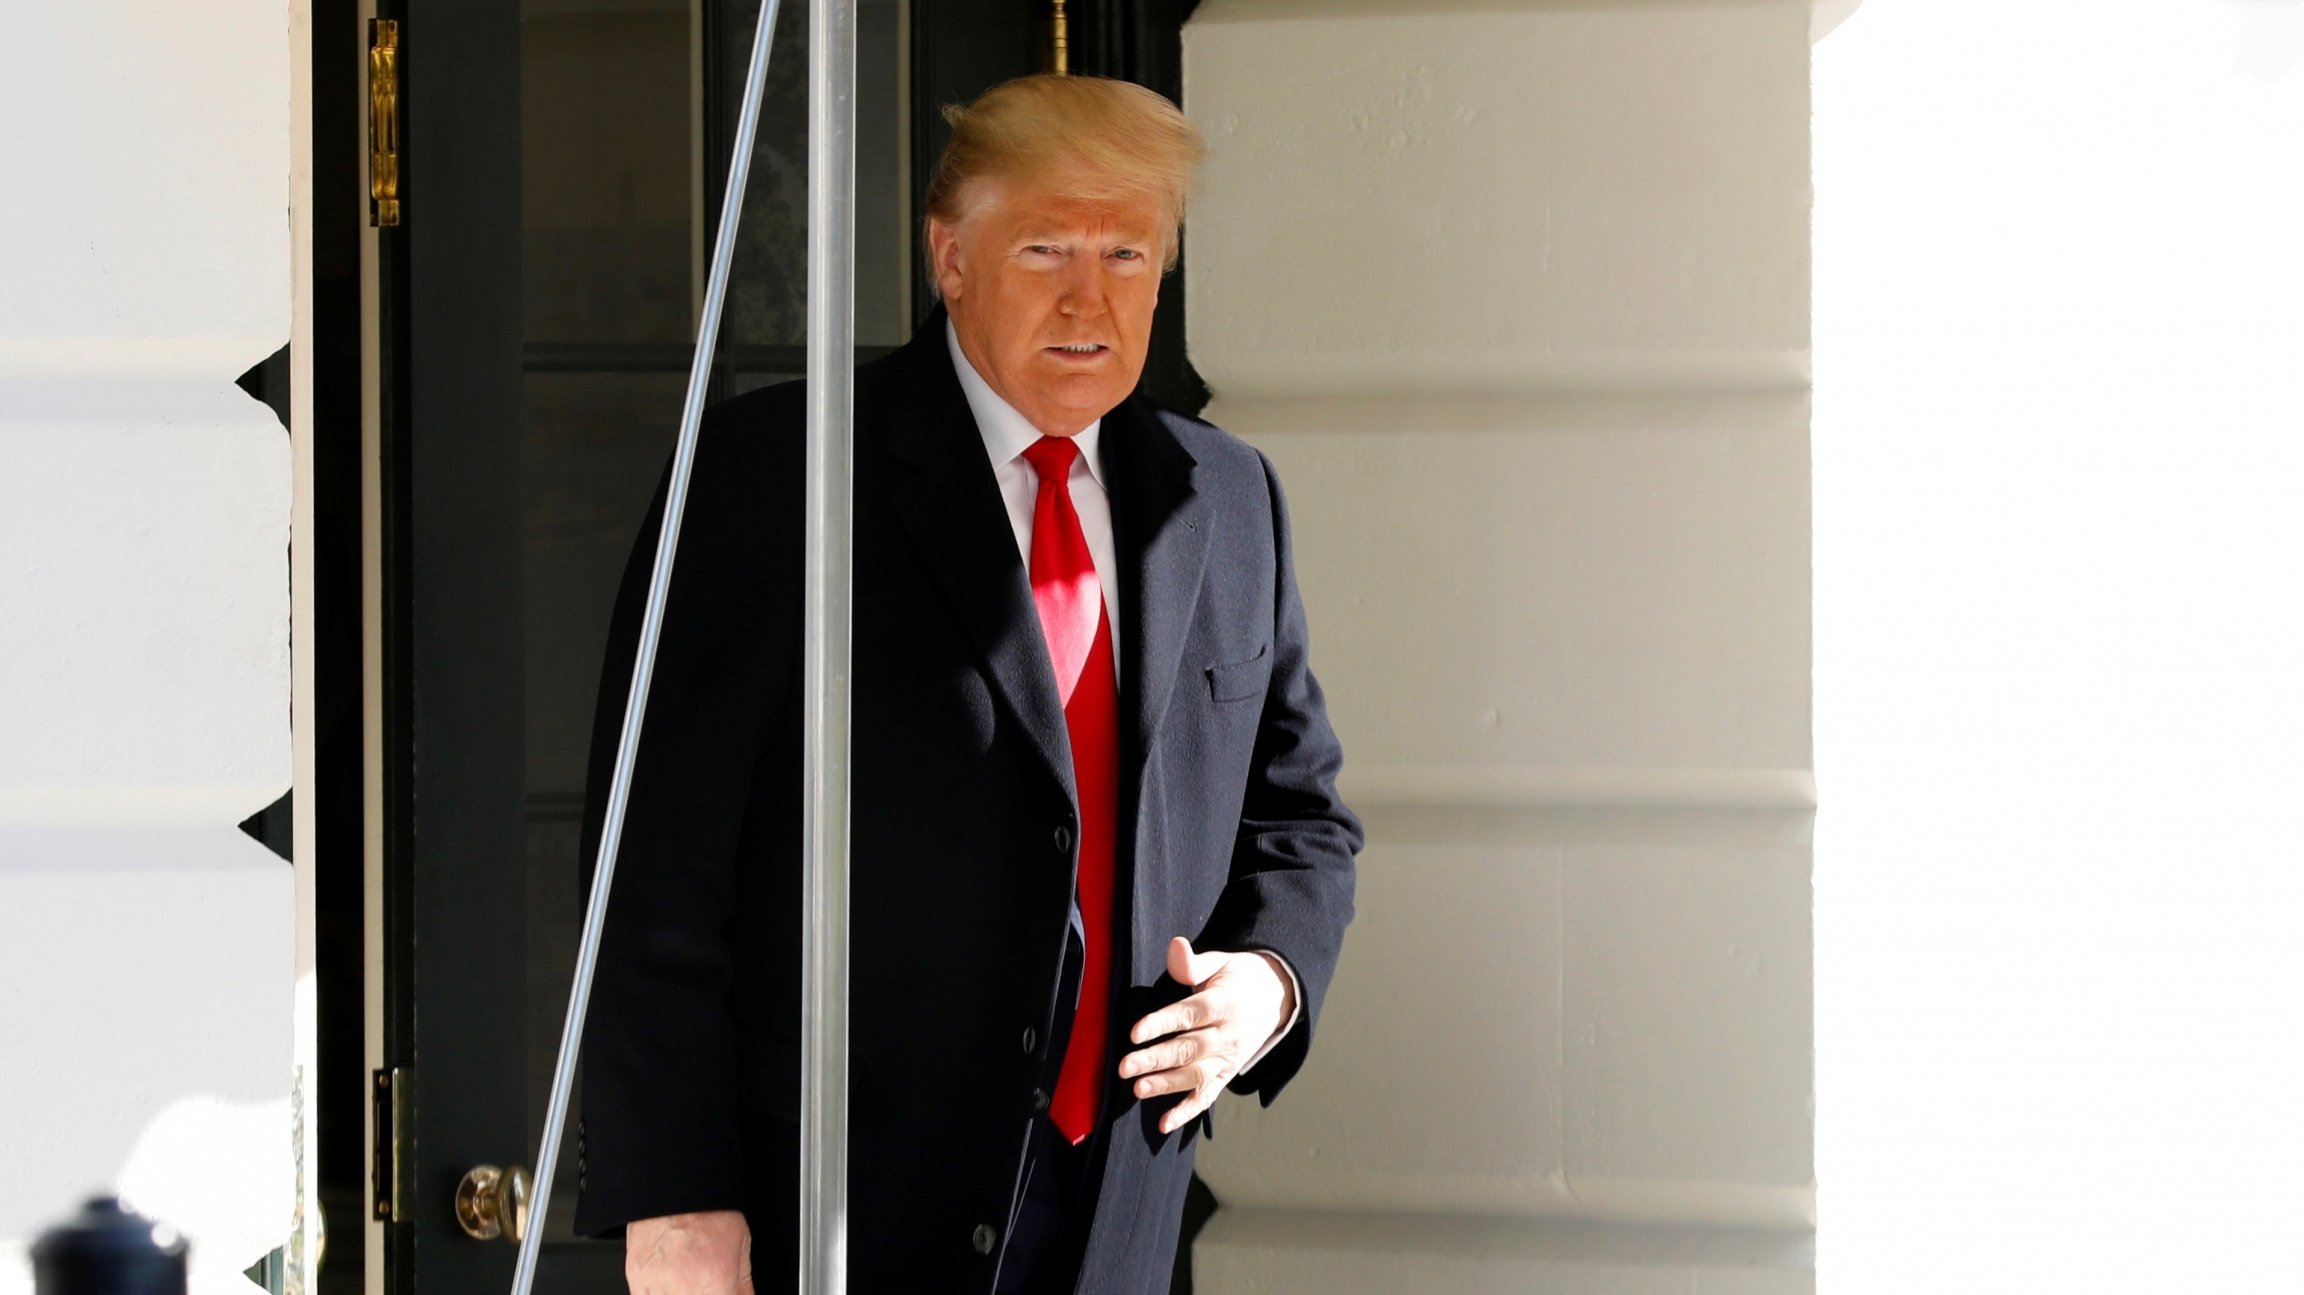 US President Donald Trump walks out from the the White House in Washington before his departure to India, Feb. 23, 2020.